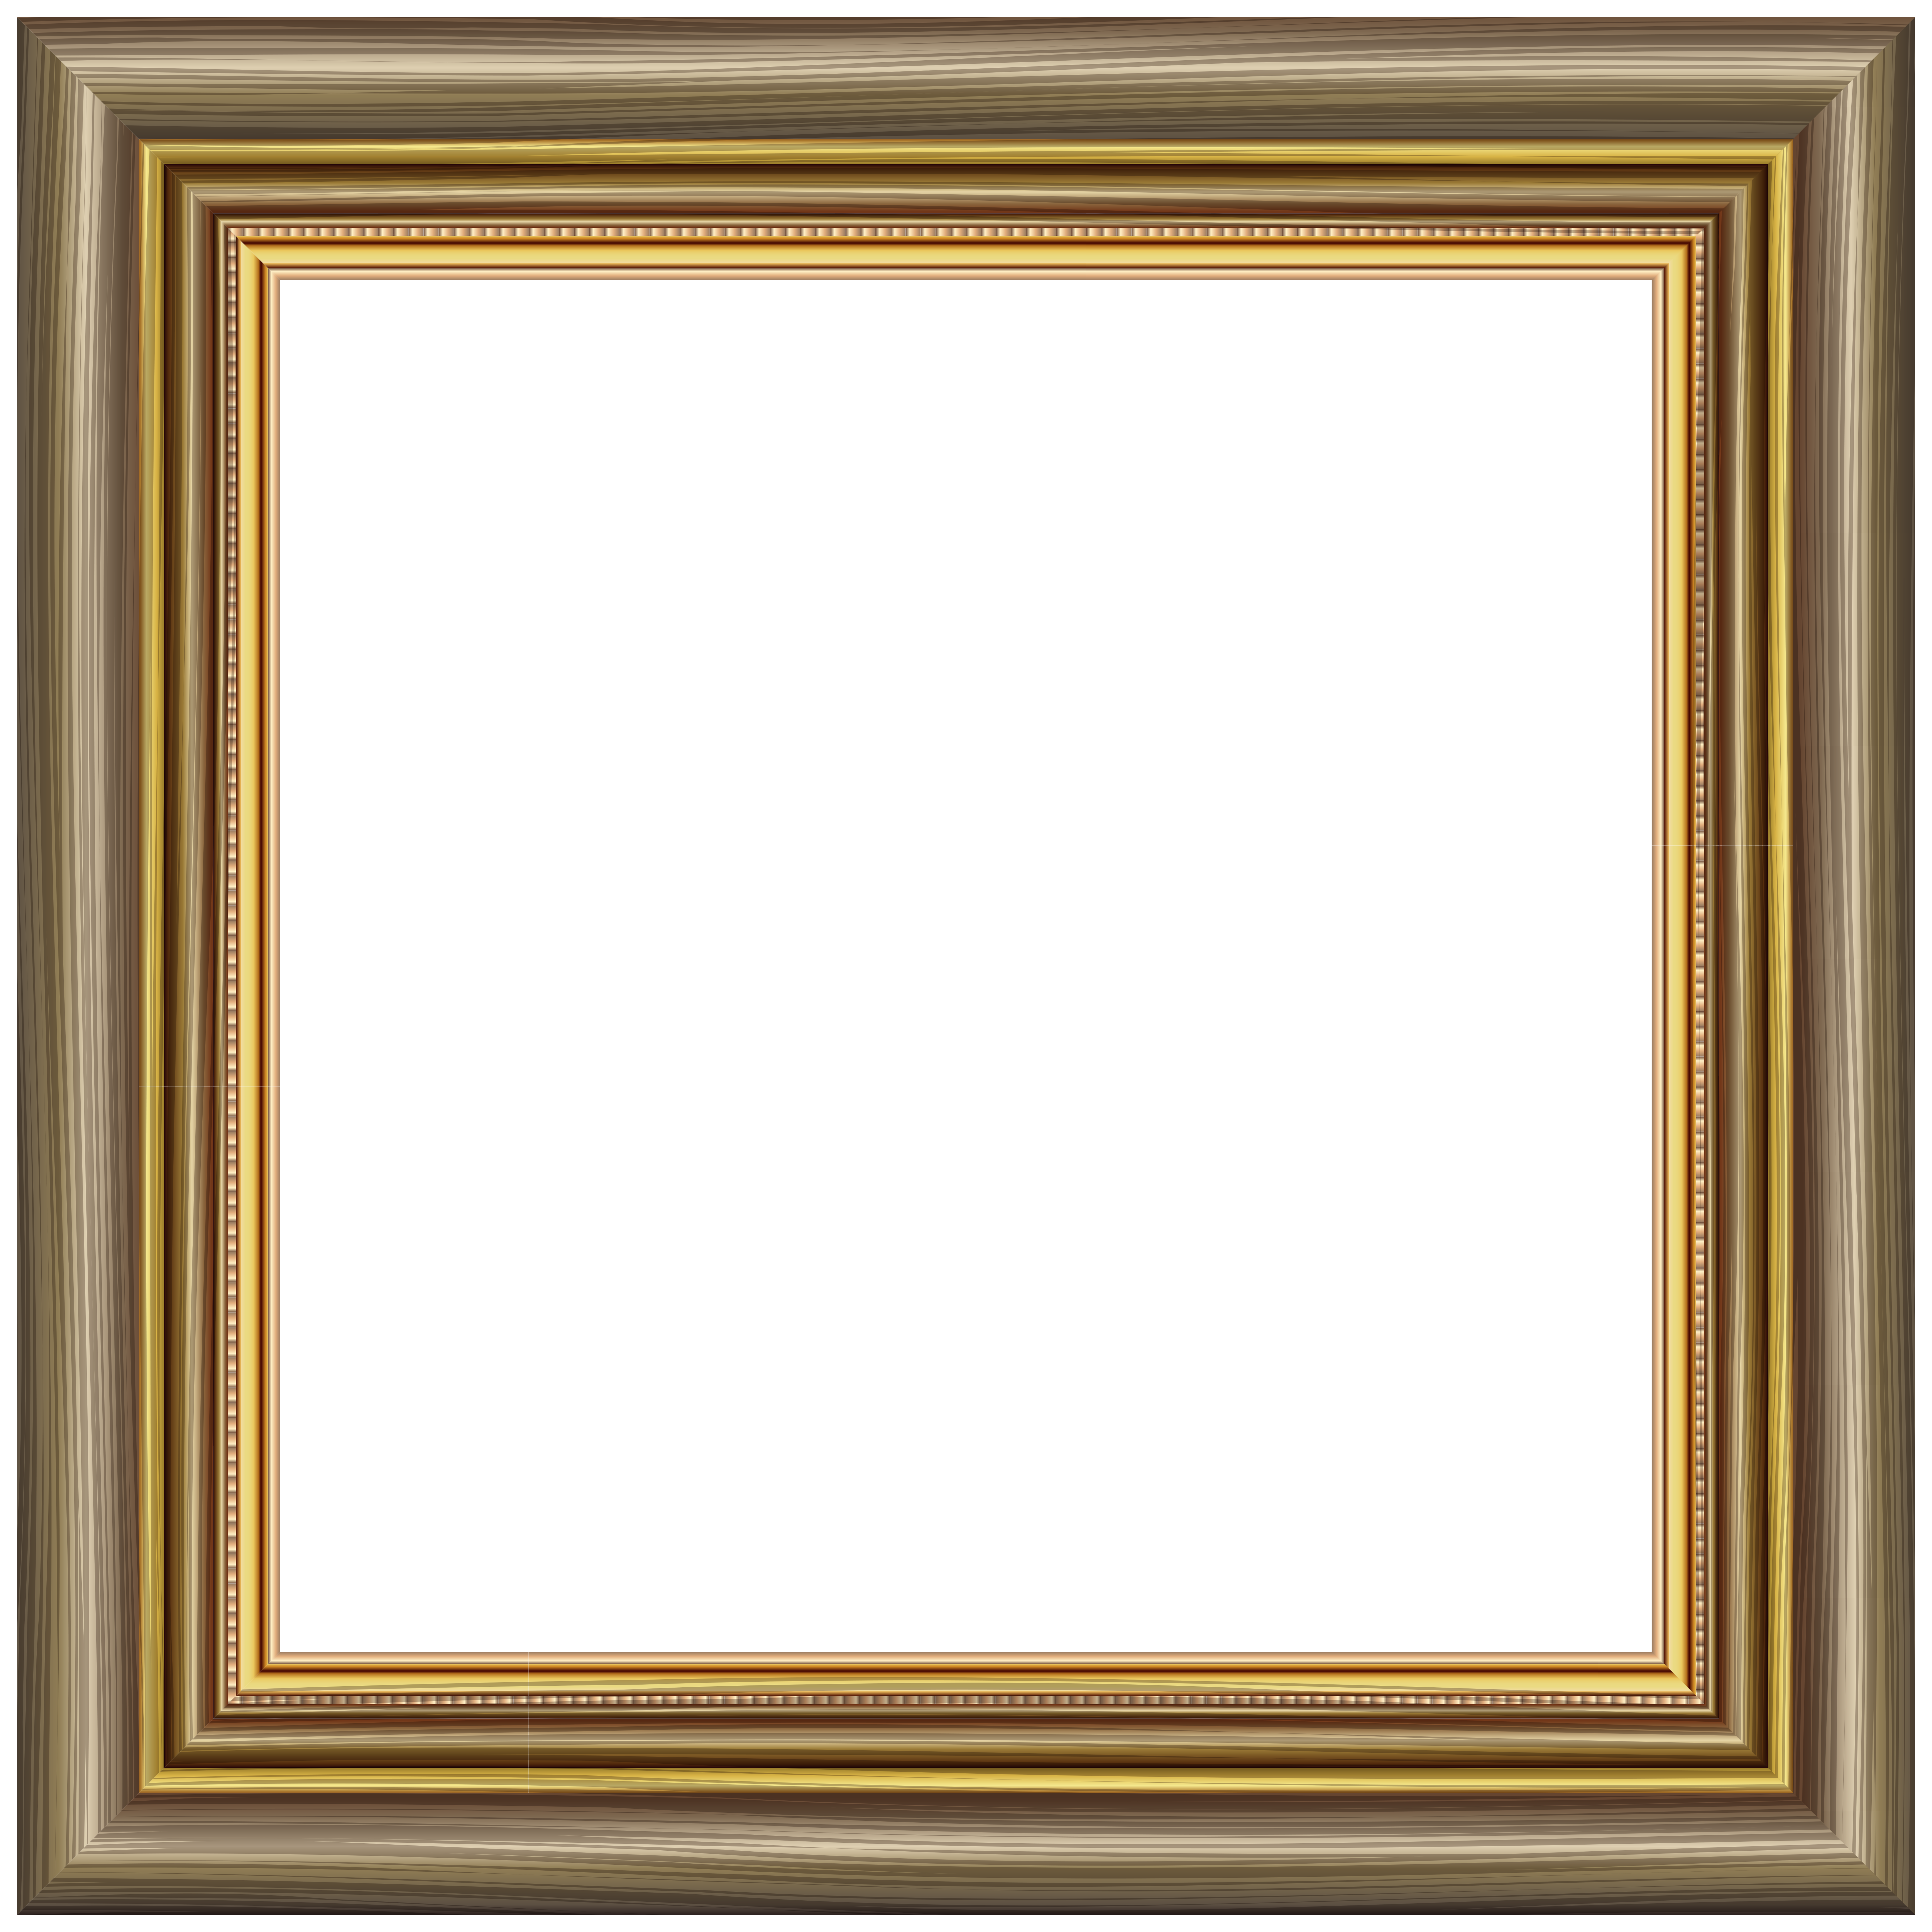 Square Frame Png Clipart Gallery Yopriceville High Quality Images And Transparent Png Free Clipart Frame Square Frames Clip Art